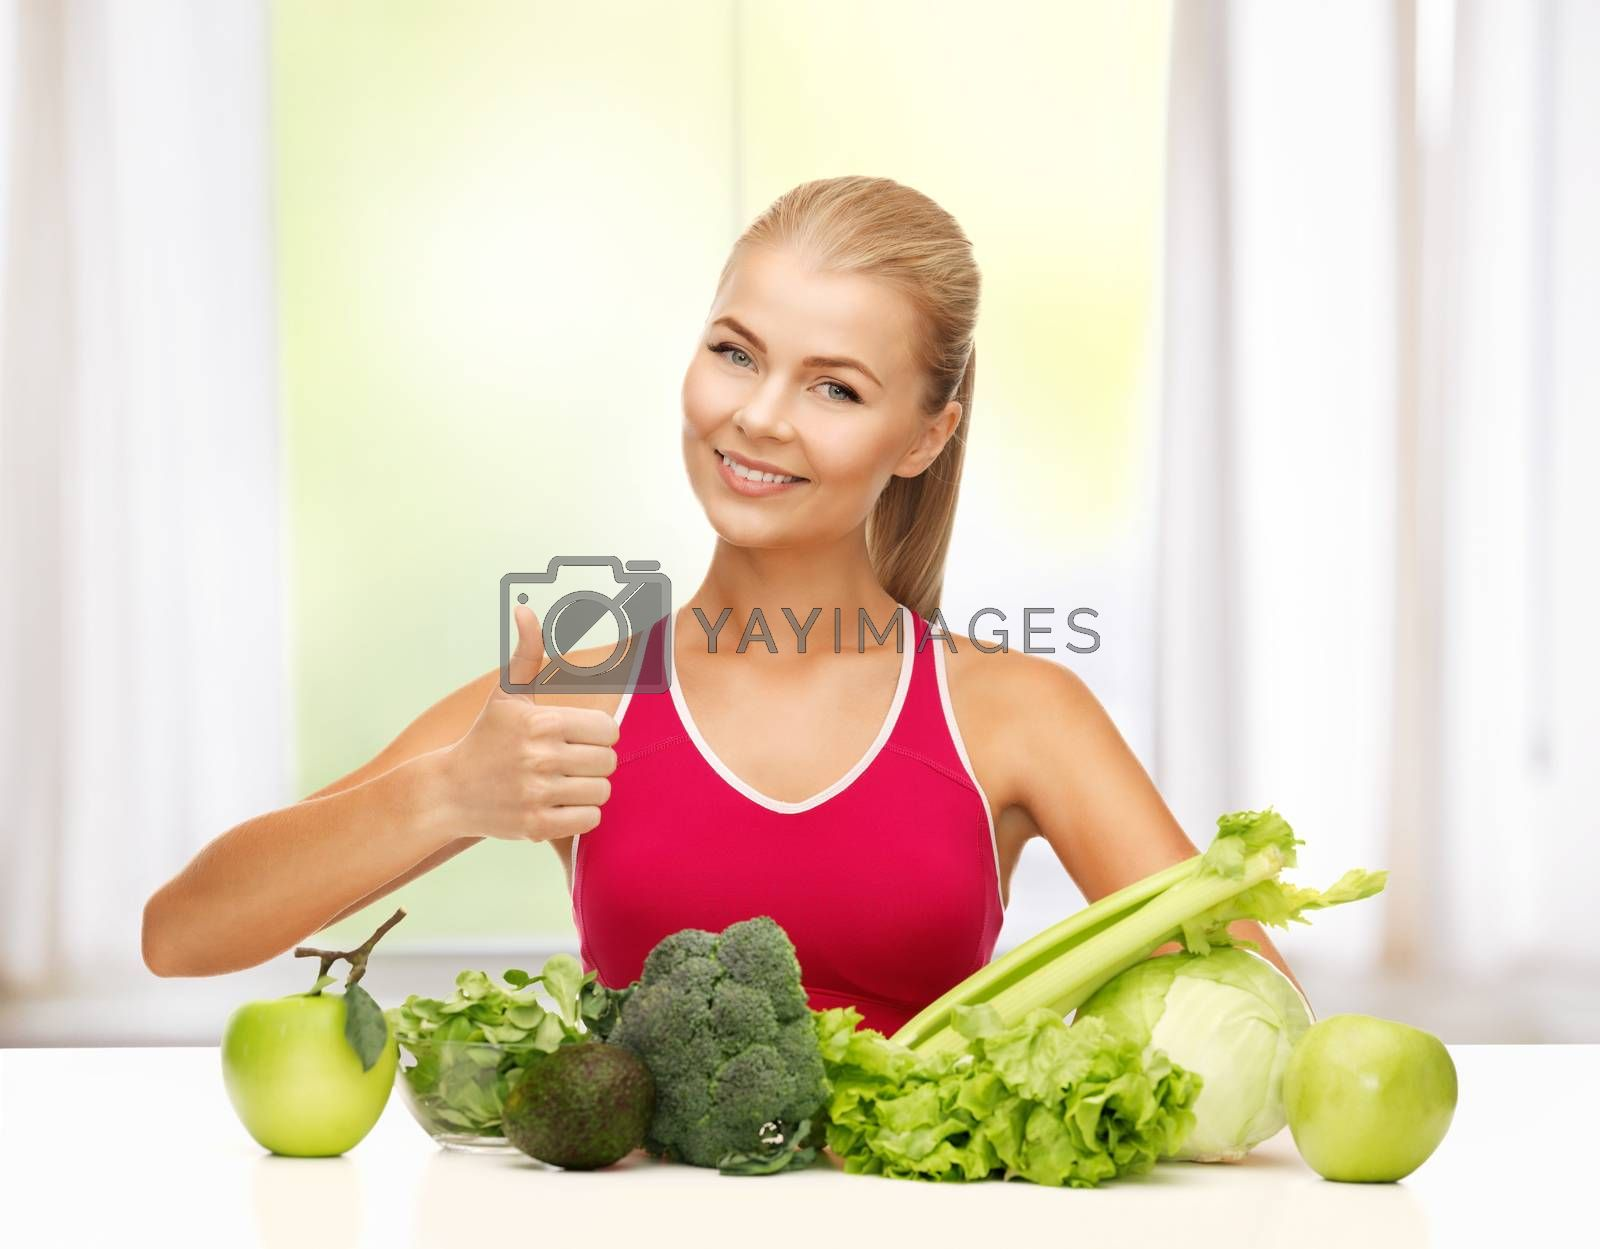 woman shows thumbs up with organic food by dolgachov